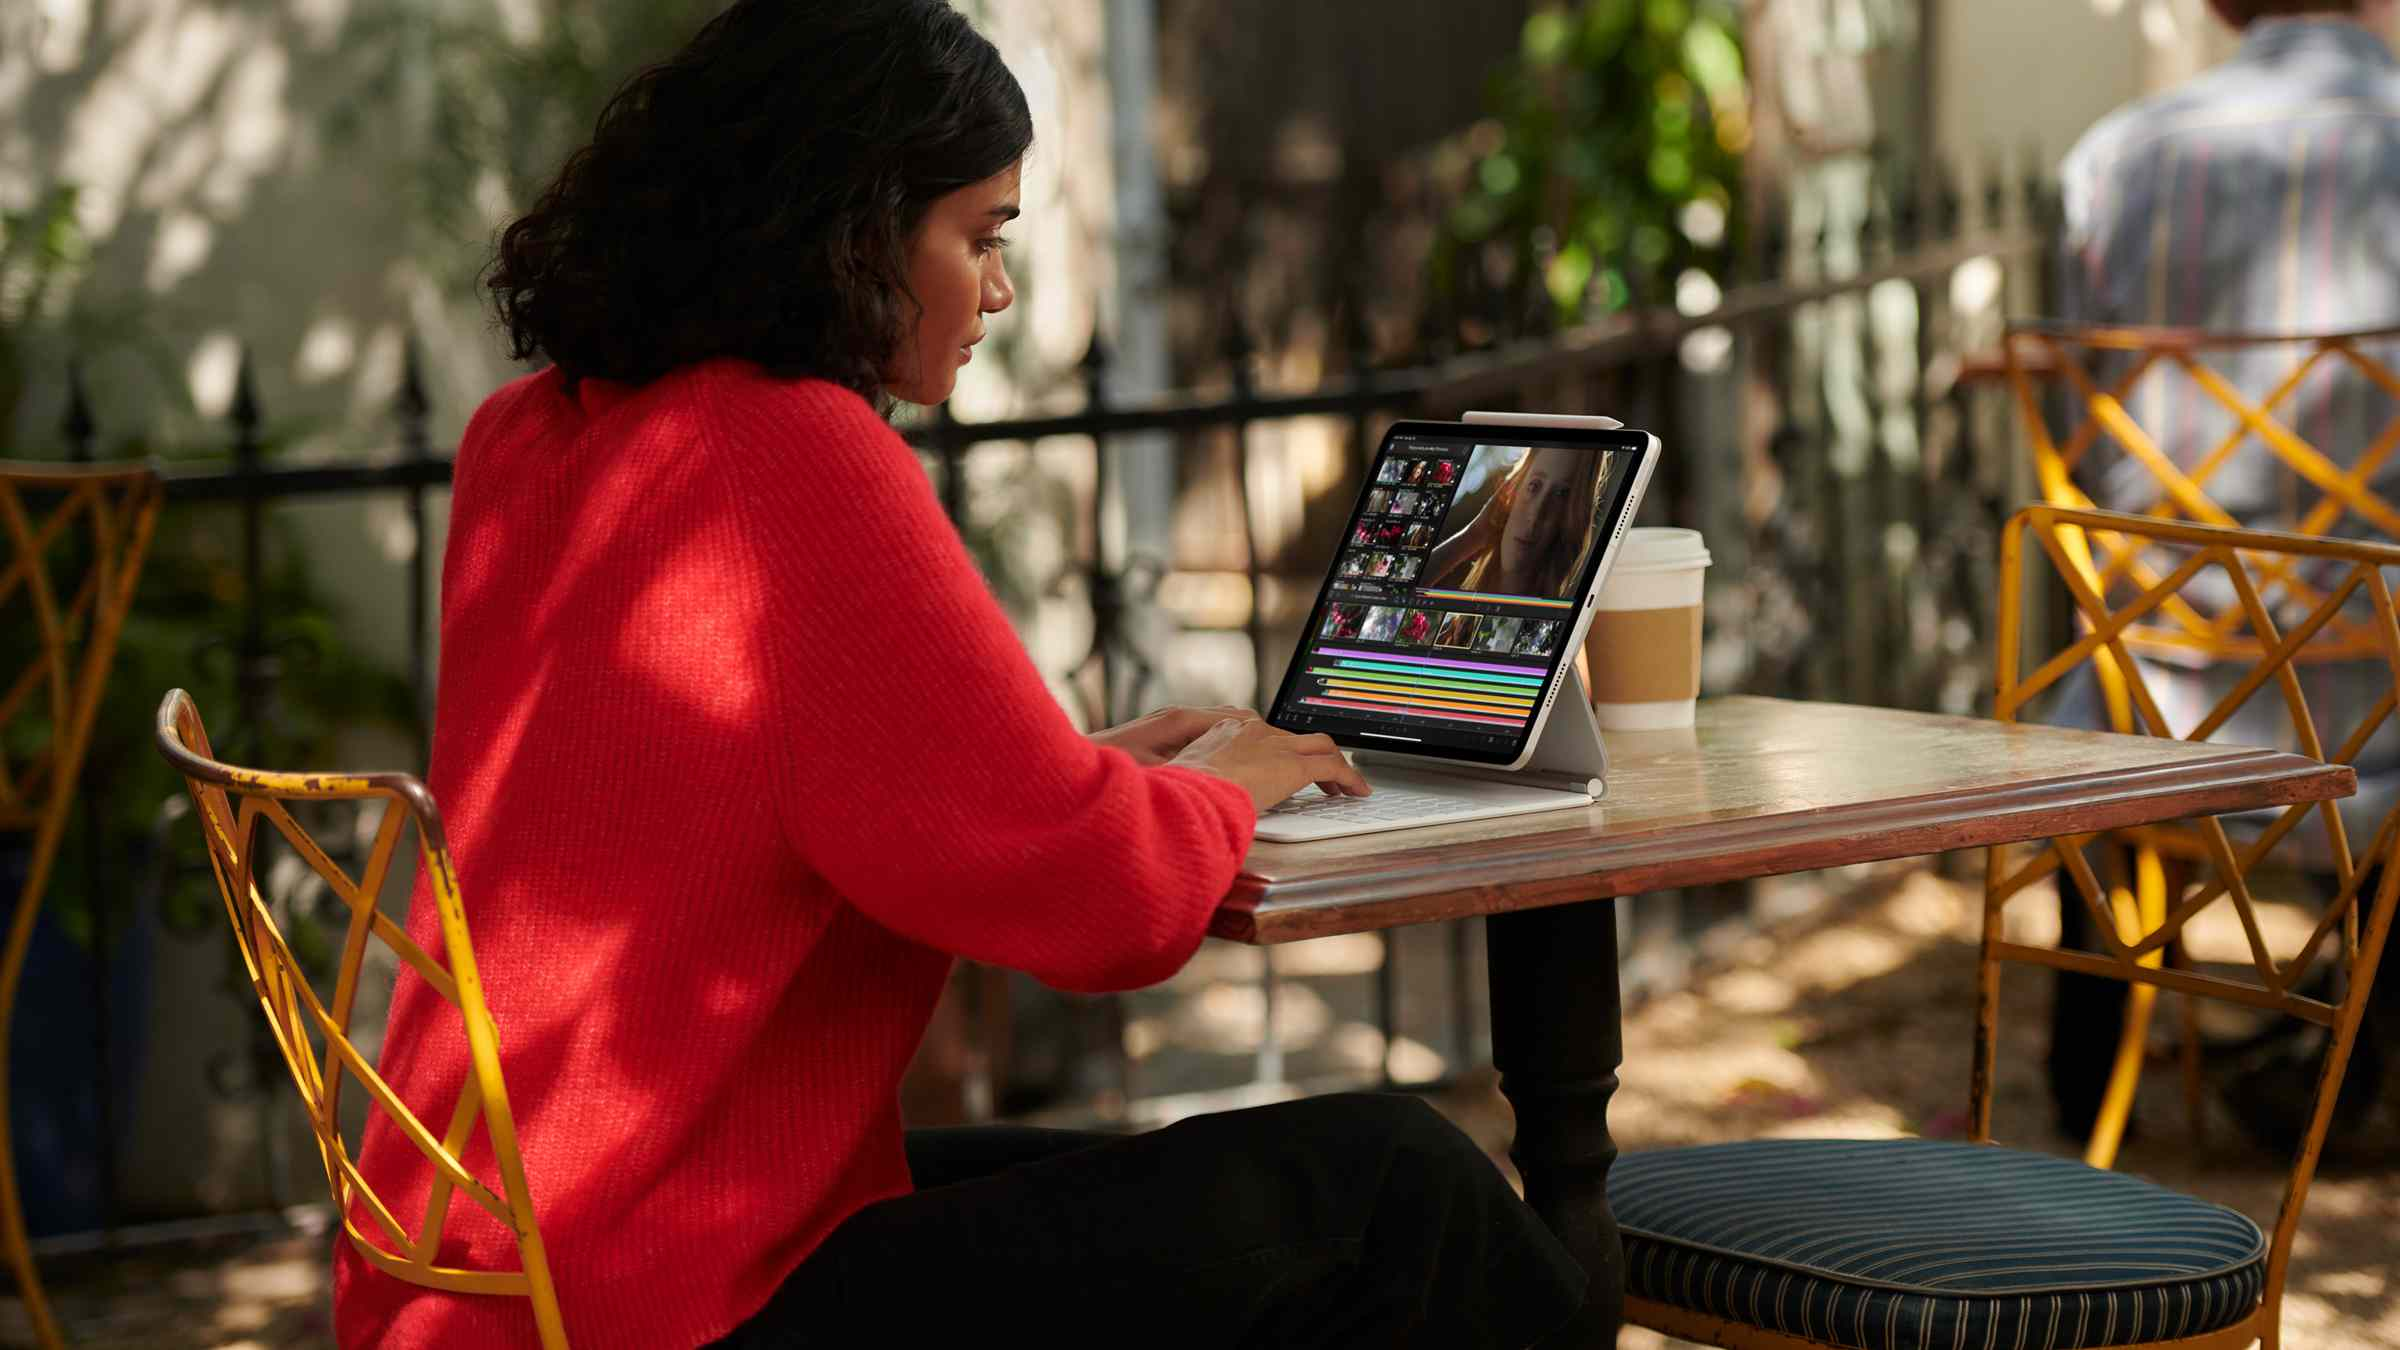 Someone using an Apple iPad Pro with an M1 chip in it while sitting in an outdoor cafe.